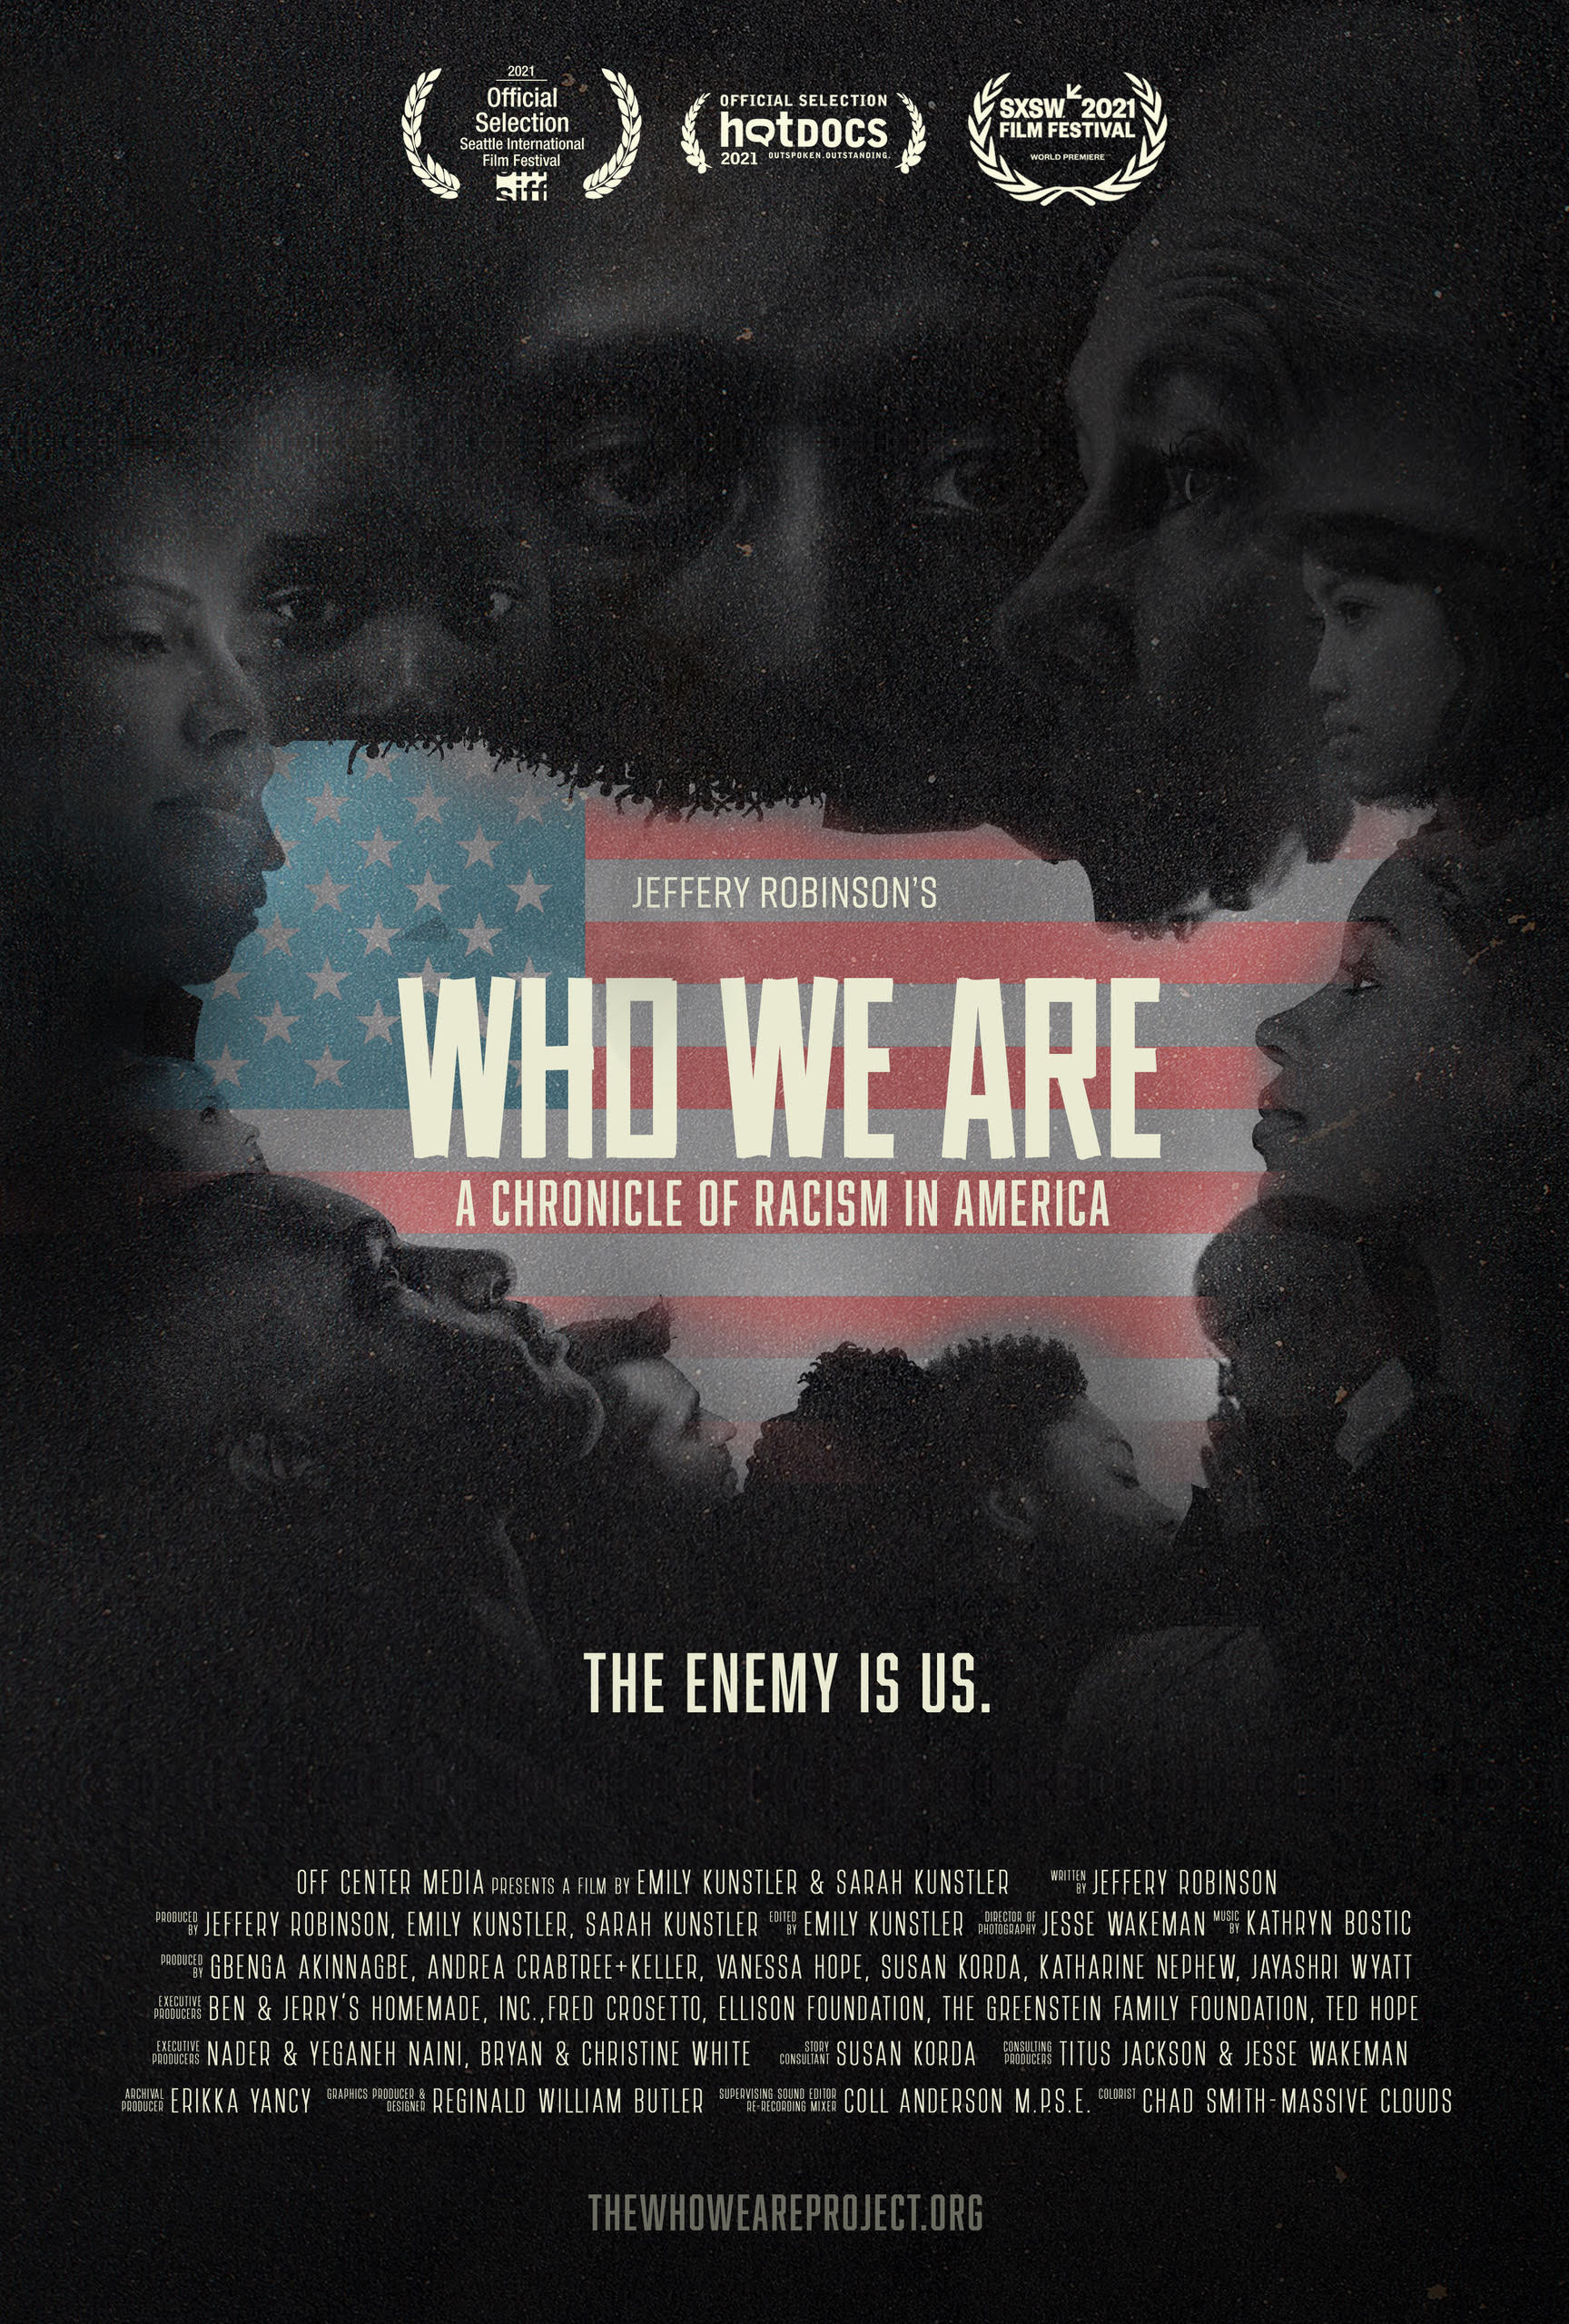 Who We Are: A Chronicle of Racism in America directed by Emily Kunstler and Sarah Kunstler